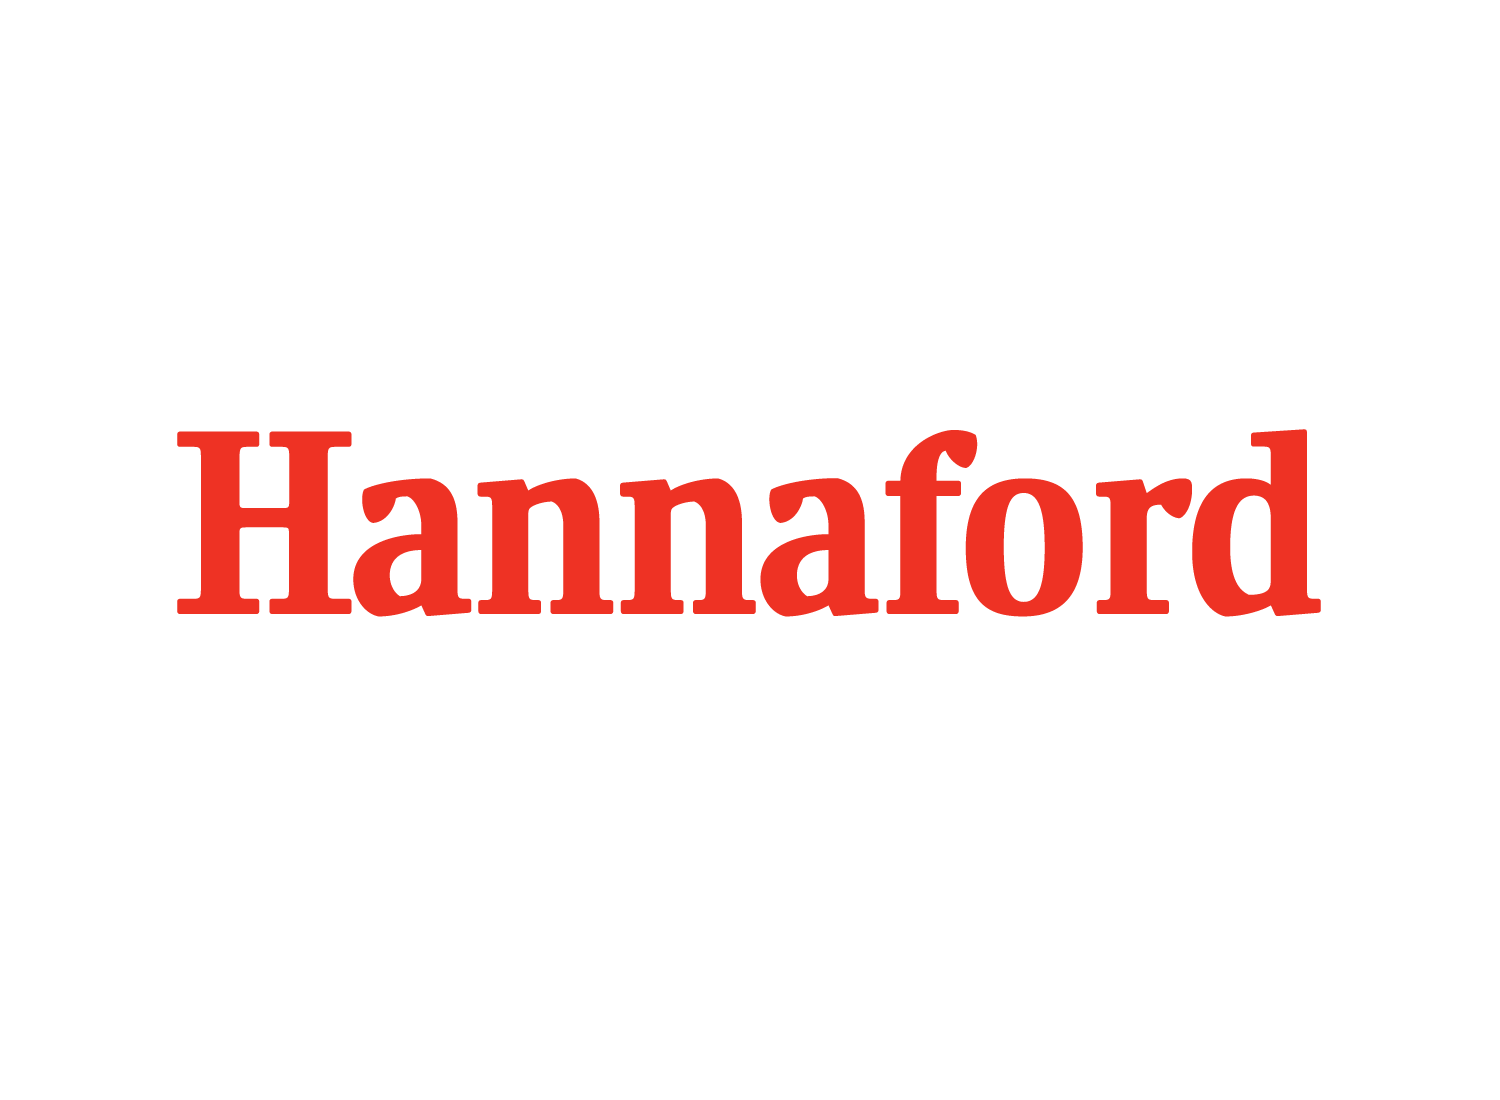 Hannaford wordmark